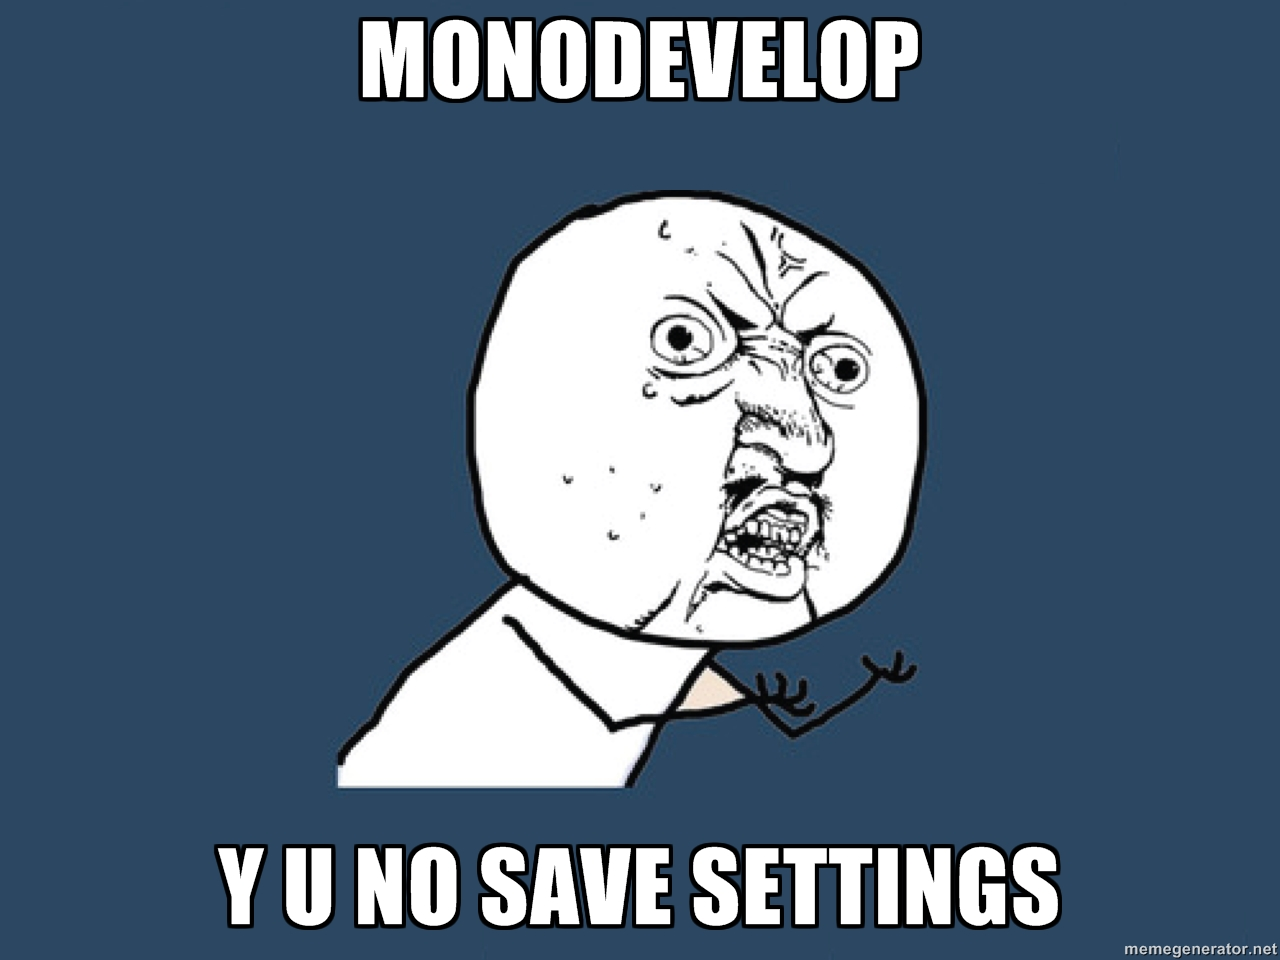 MonoDevelop y u no save settings